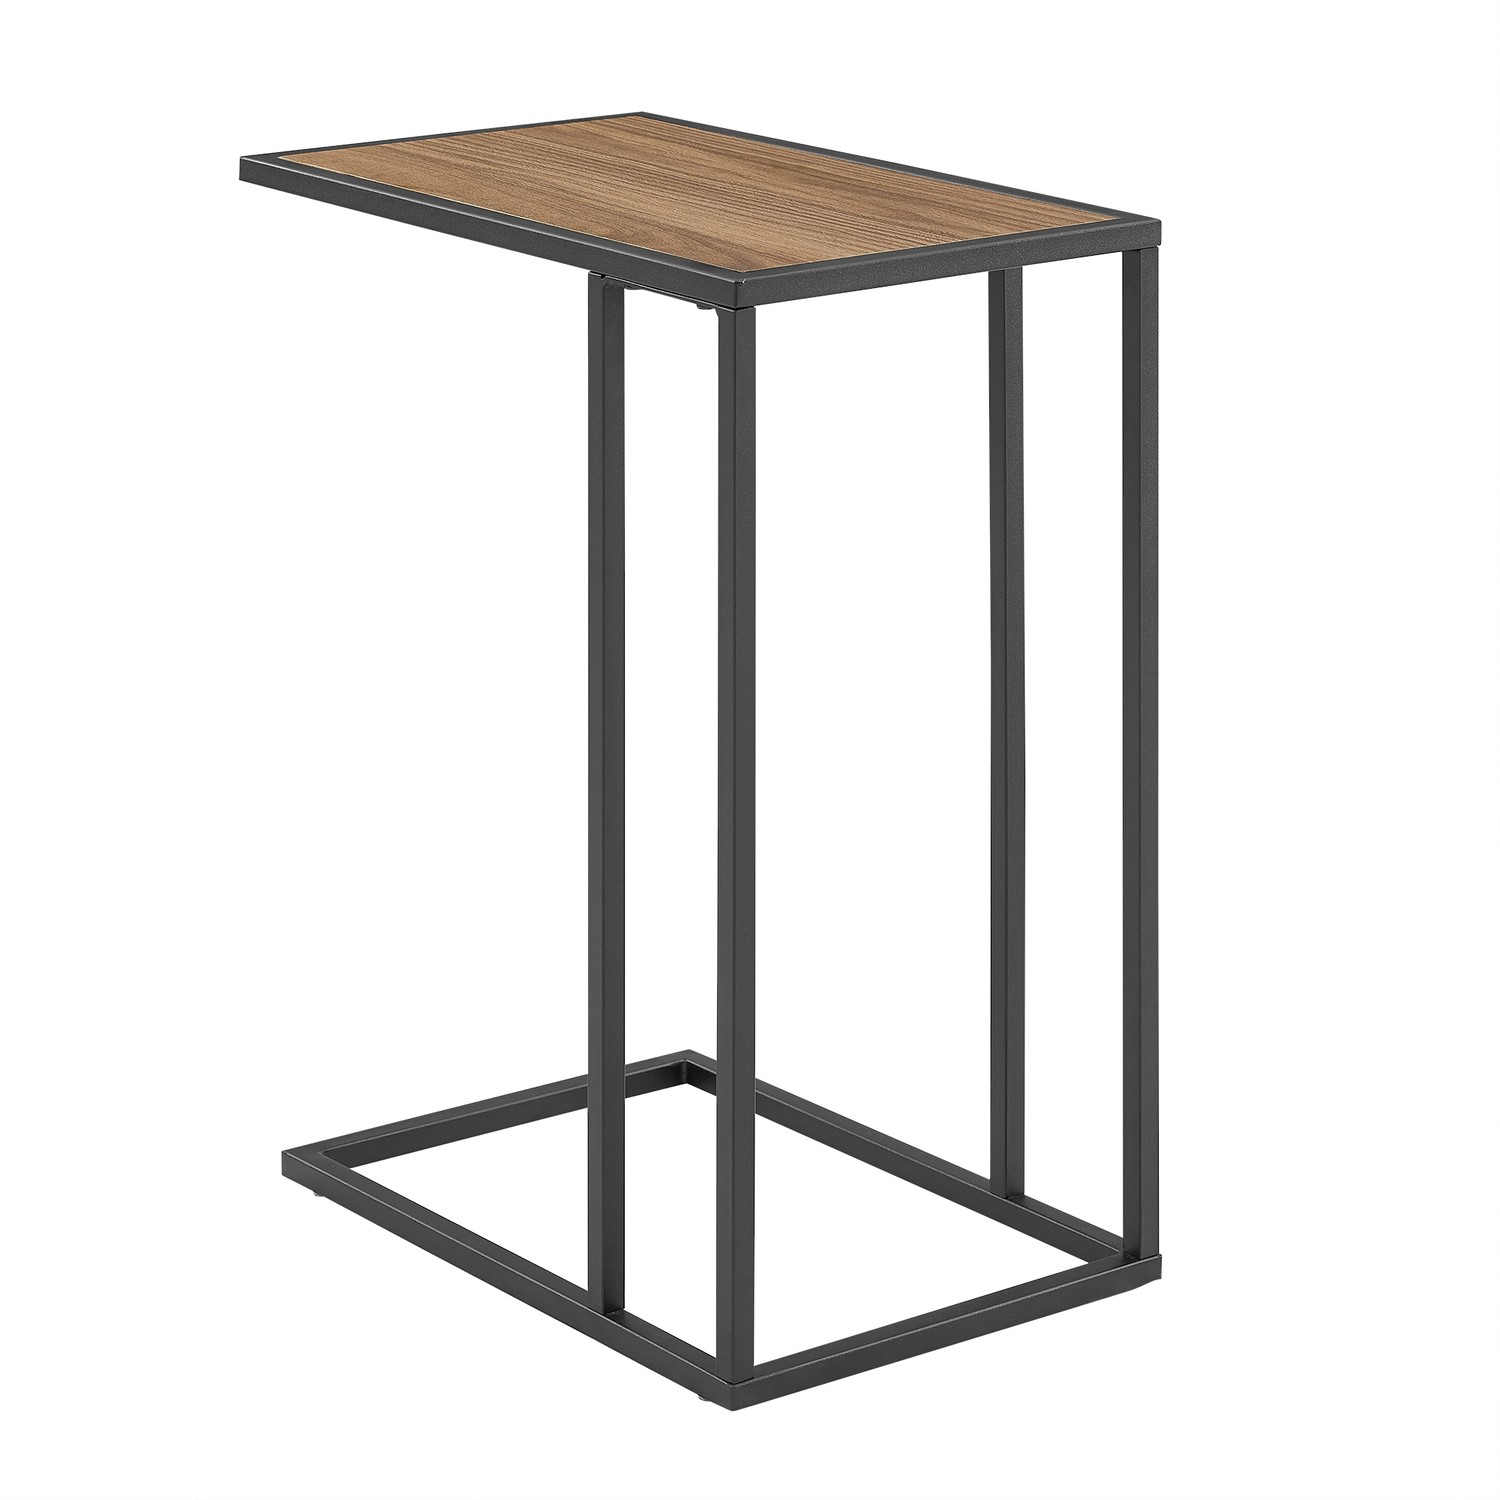 Picture of: Foster Wooden Side Table With Light Wood Top Metal Legs Furniture123